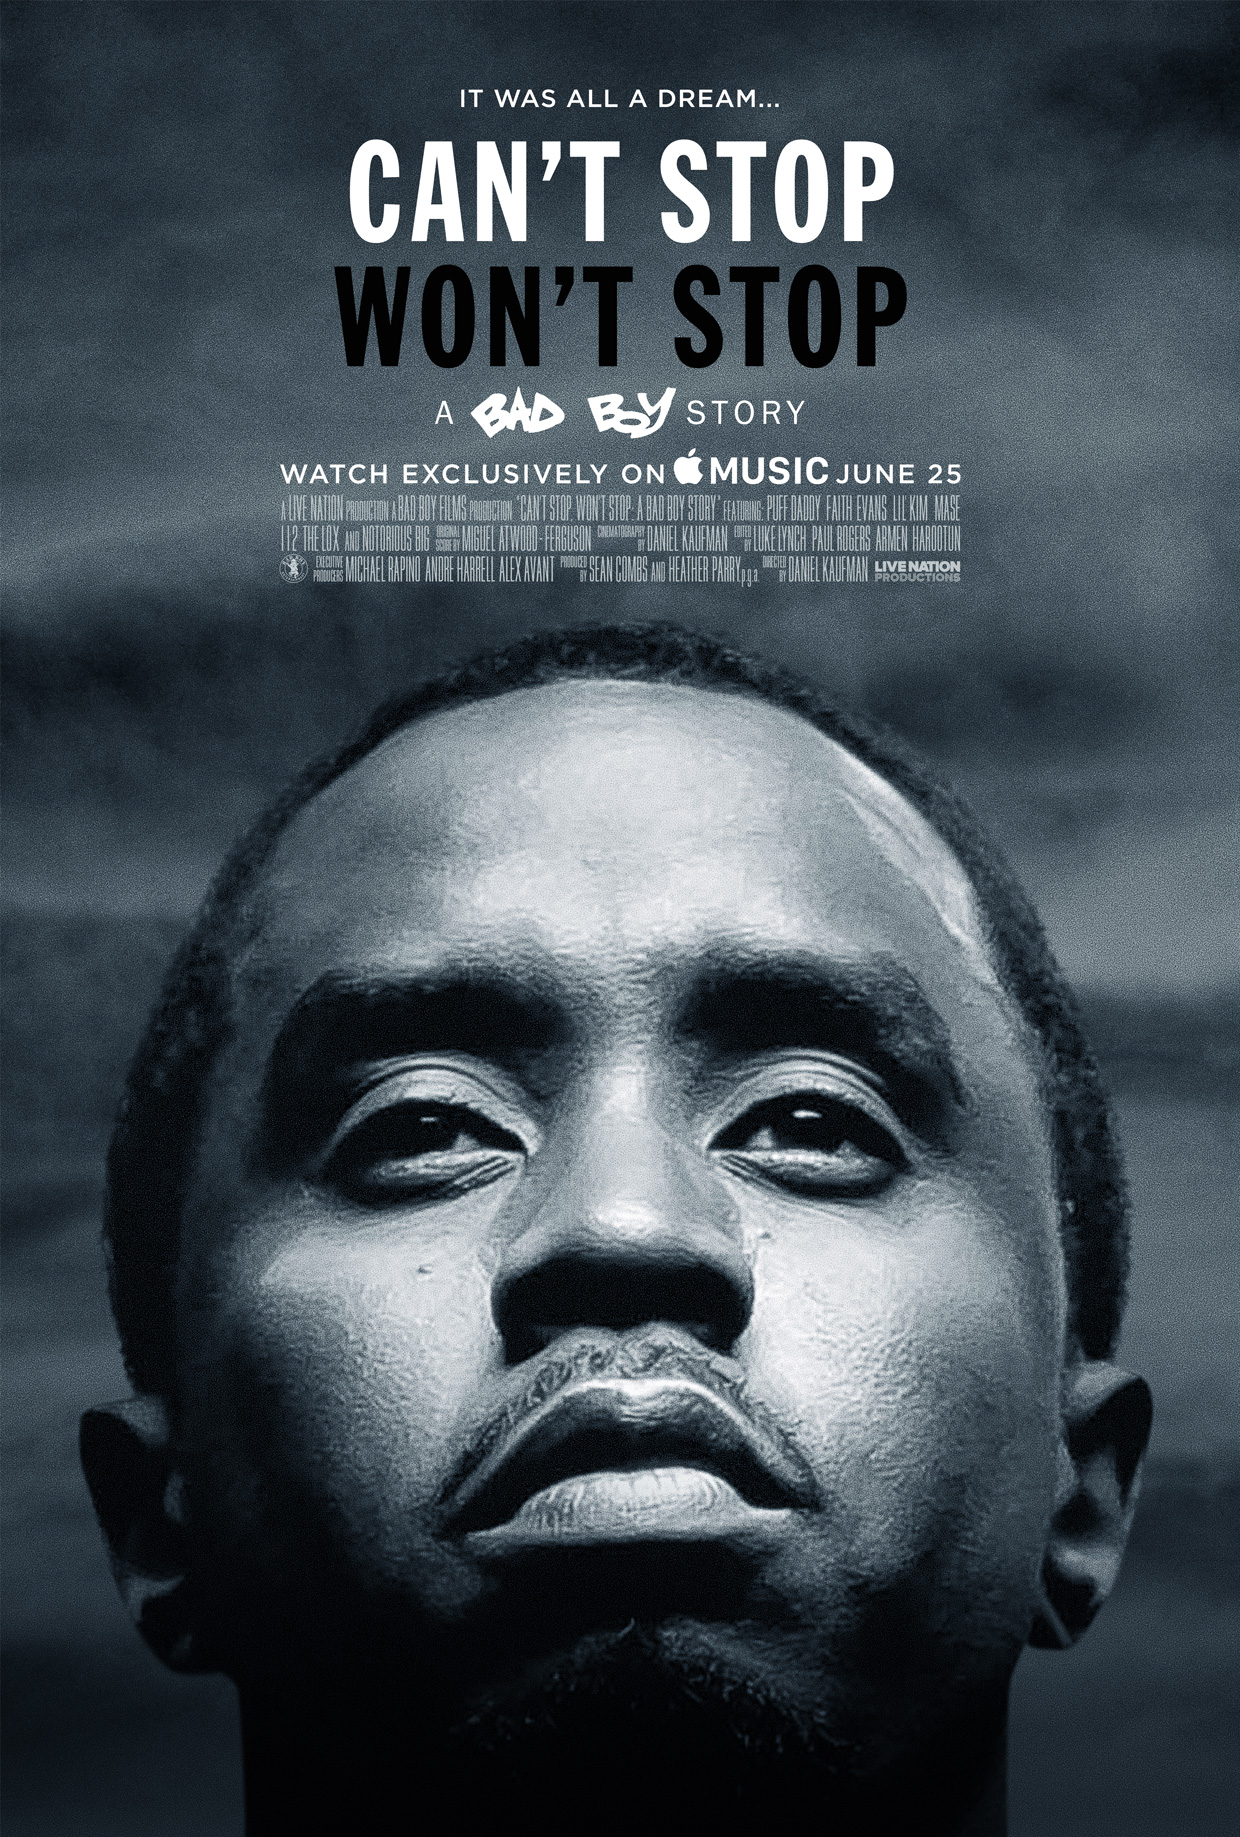 Can't Stop, Won't Stop  A Bad Boy Story (2017)